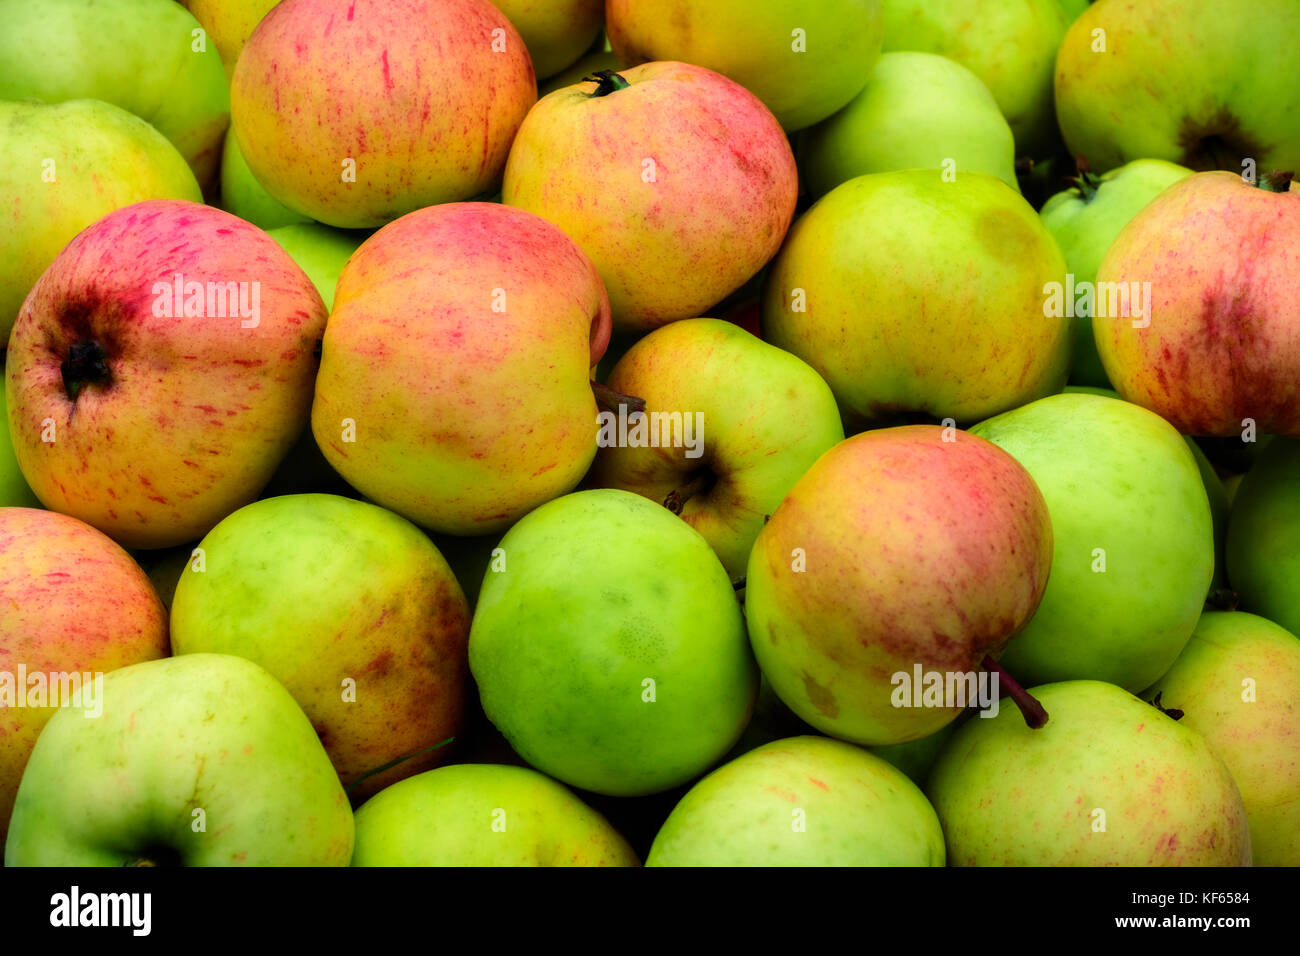 Image of ripe juicy apples, green and red, to use as a background. - Stock Image